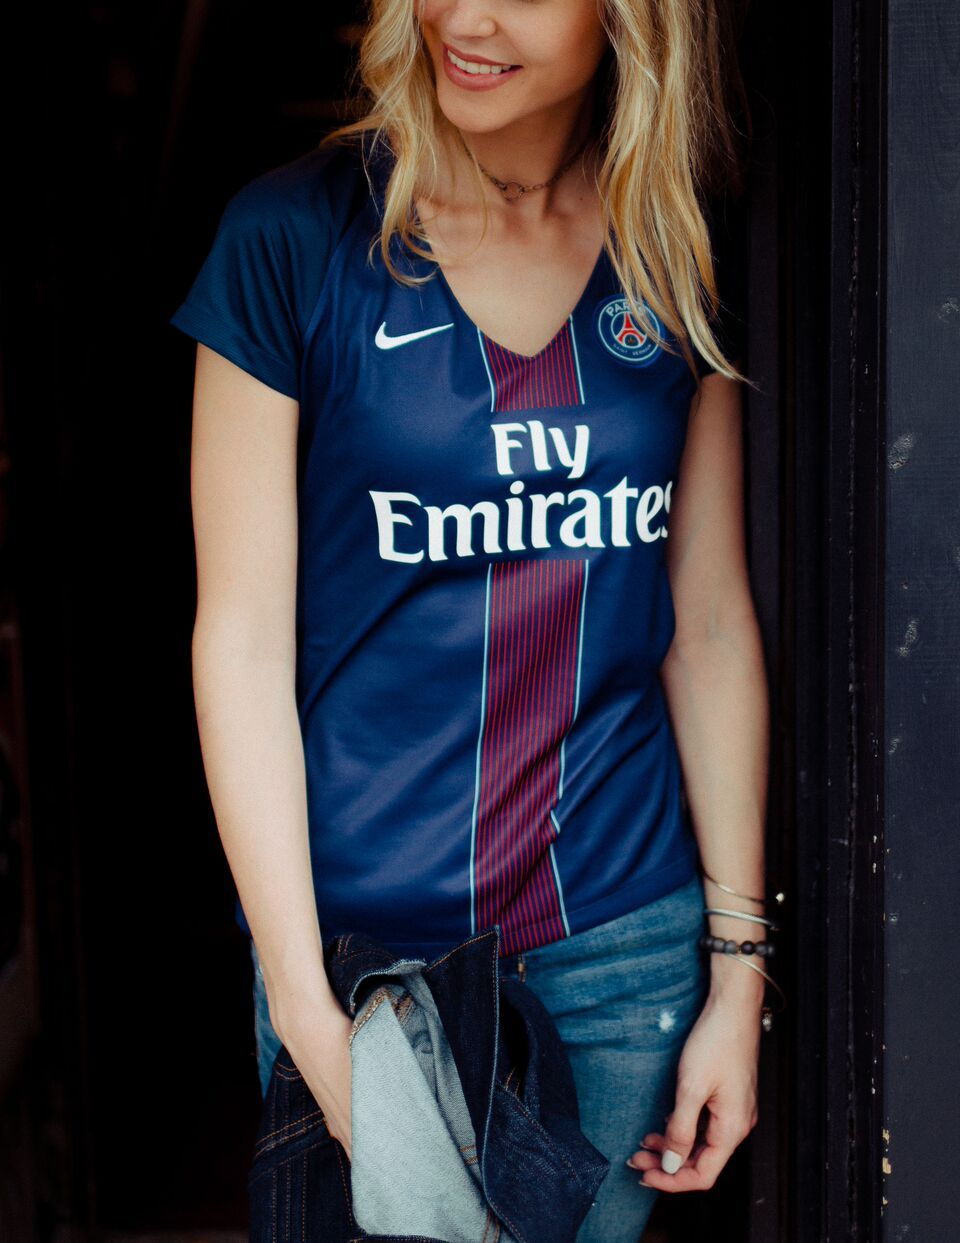 Paris Saint Germain Jerseys Available Now At Worldsoccershop Com Football Jersey Outfit World Soccer Shop Jersey Outfit